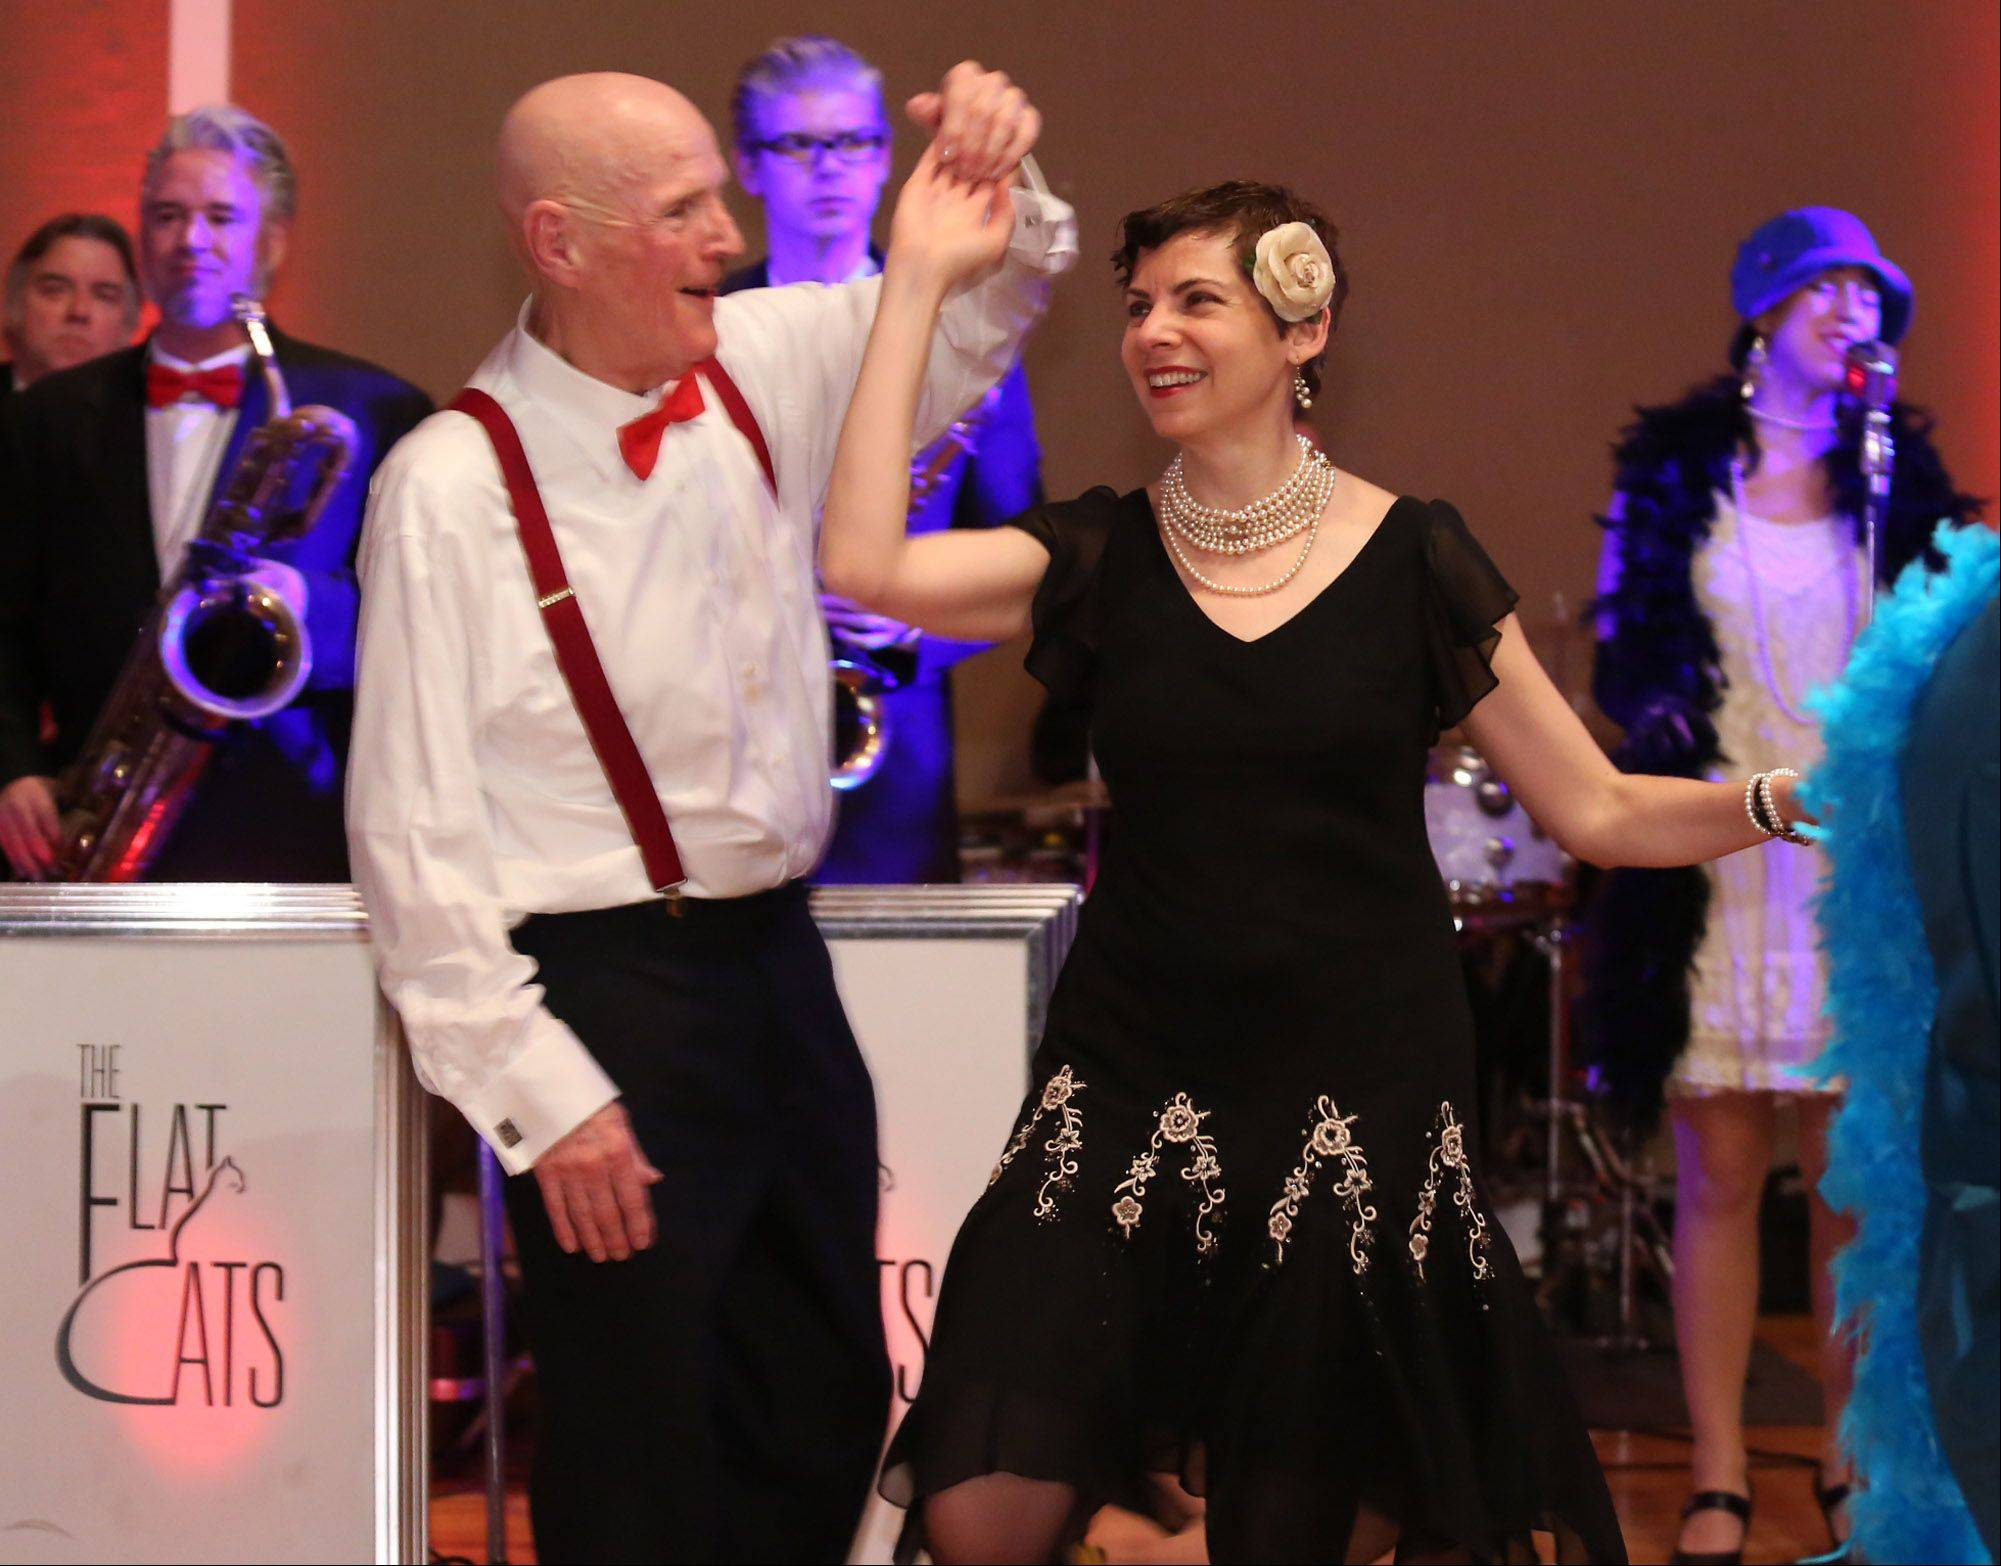 "George LeClaire/gleclaire@dailyherald.com Tom Thomas of Sleepy Hollow dances with friend Mary Roback of Park Ridge at the Arlington Heights Historical Society´s Speakeasy FUNdraiser ""A Celebration of the Decades: the Roaring 1920sÓ event at the Metropolis Ballroom on Friday in Arlington Heights."